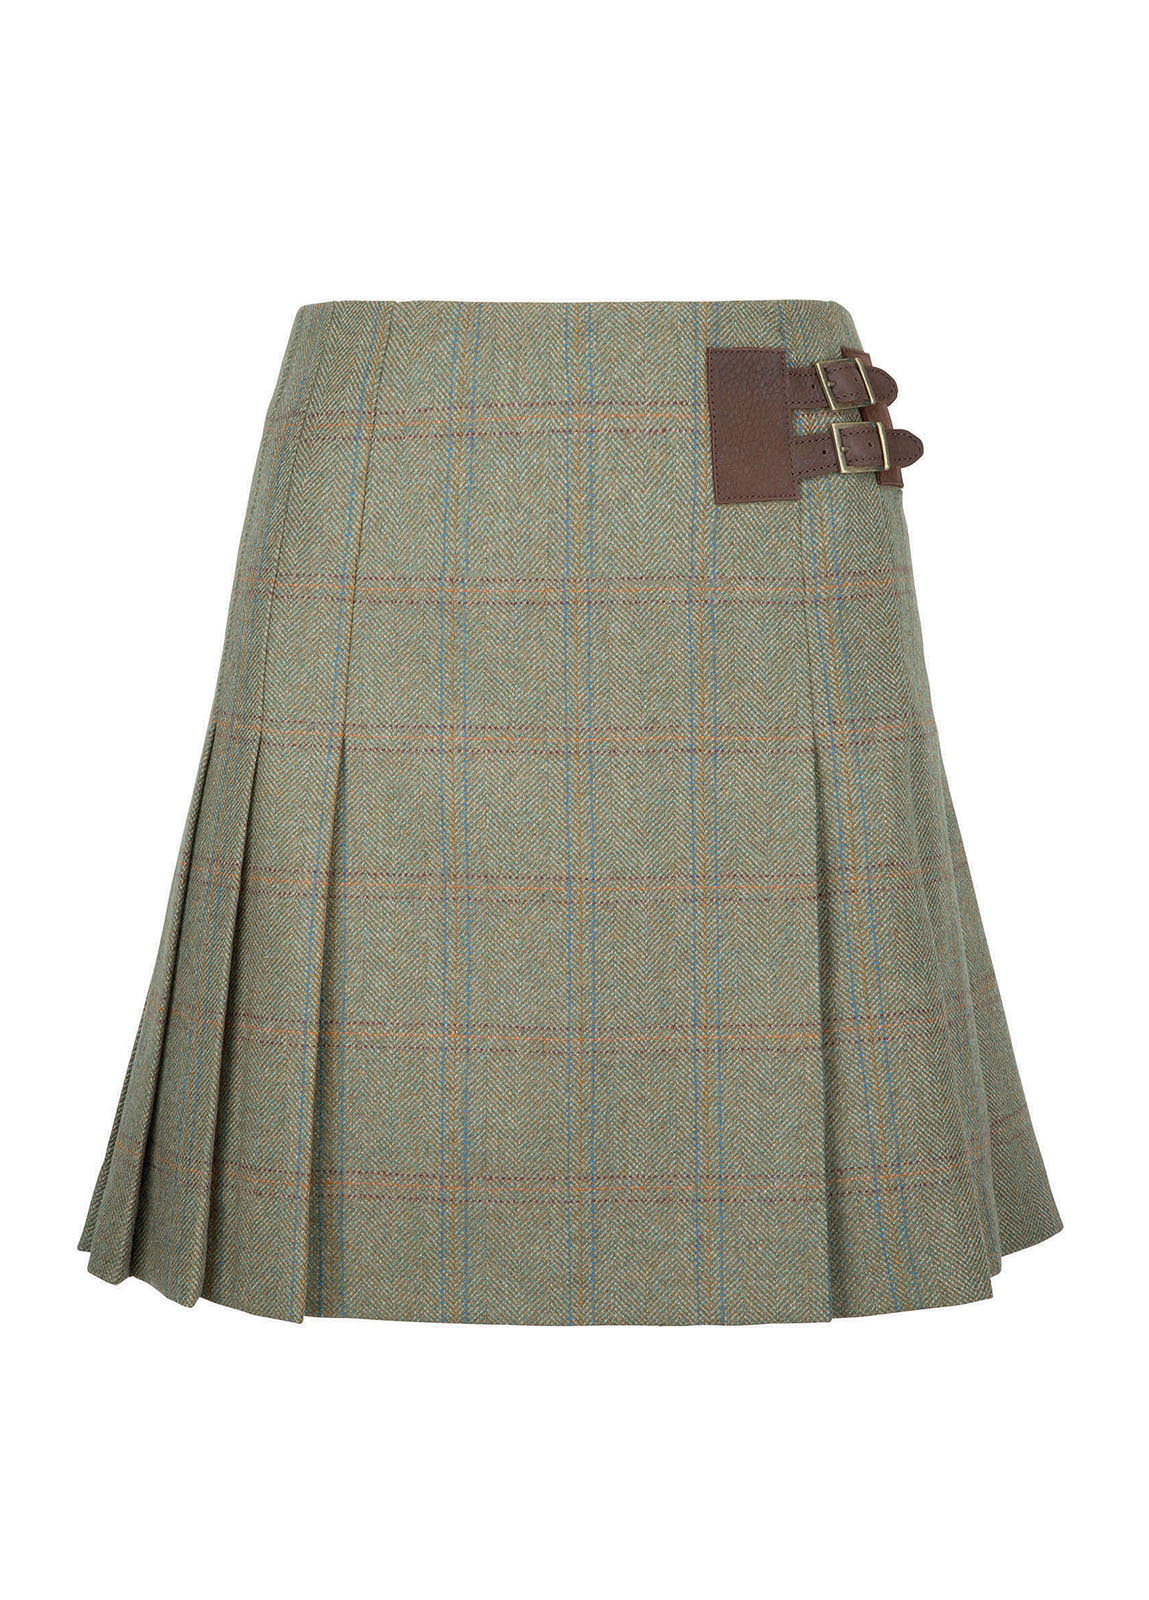 Dubarry_ Foxglove Tweed Skirt - Acorn_Image_2